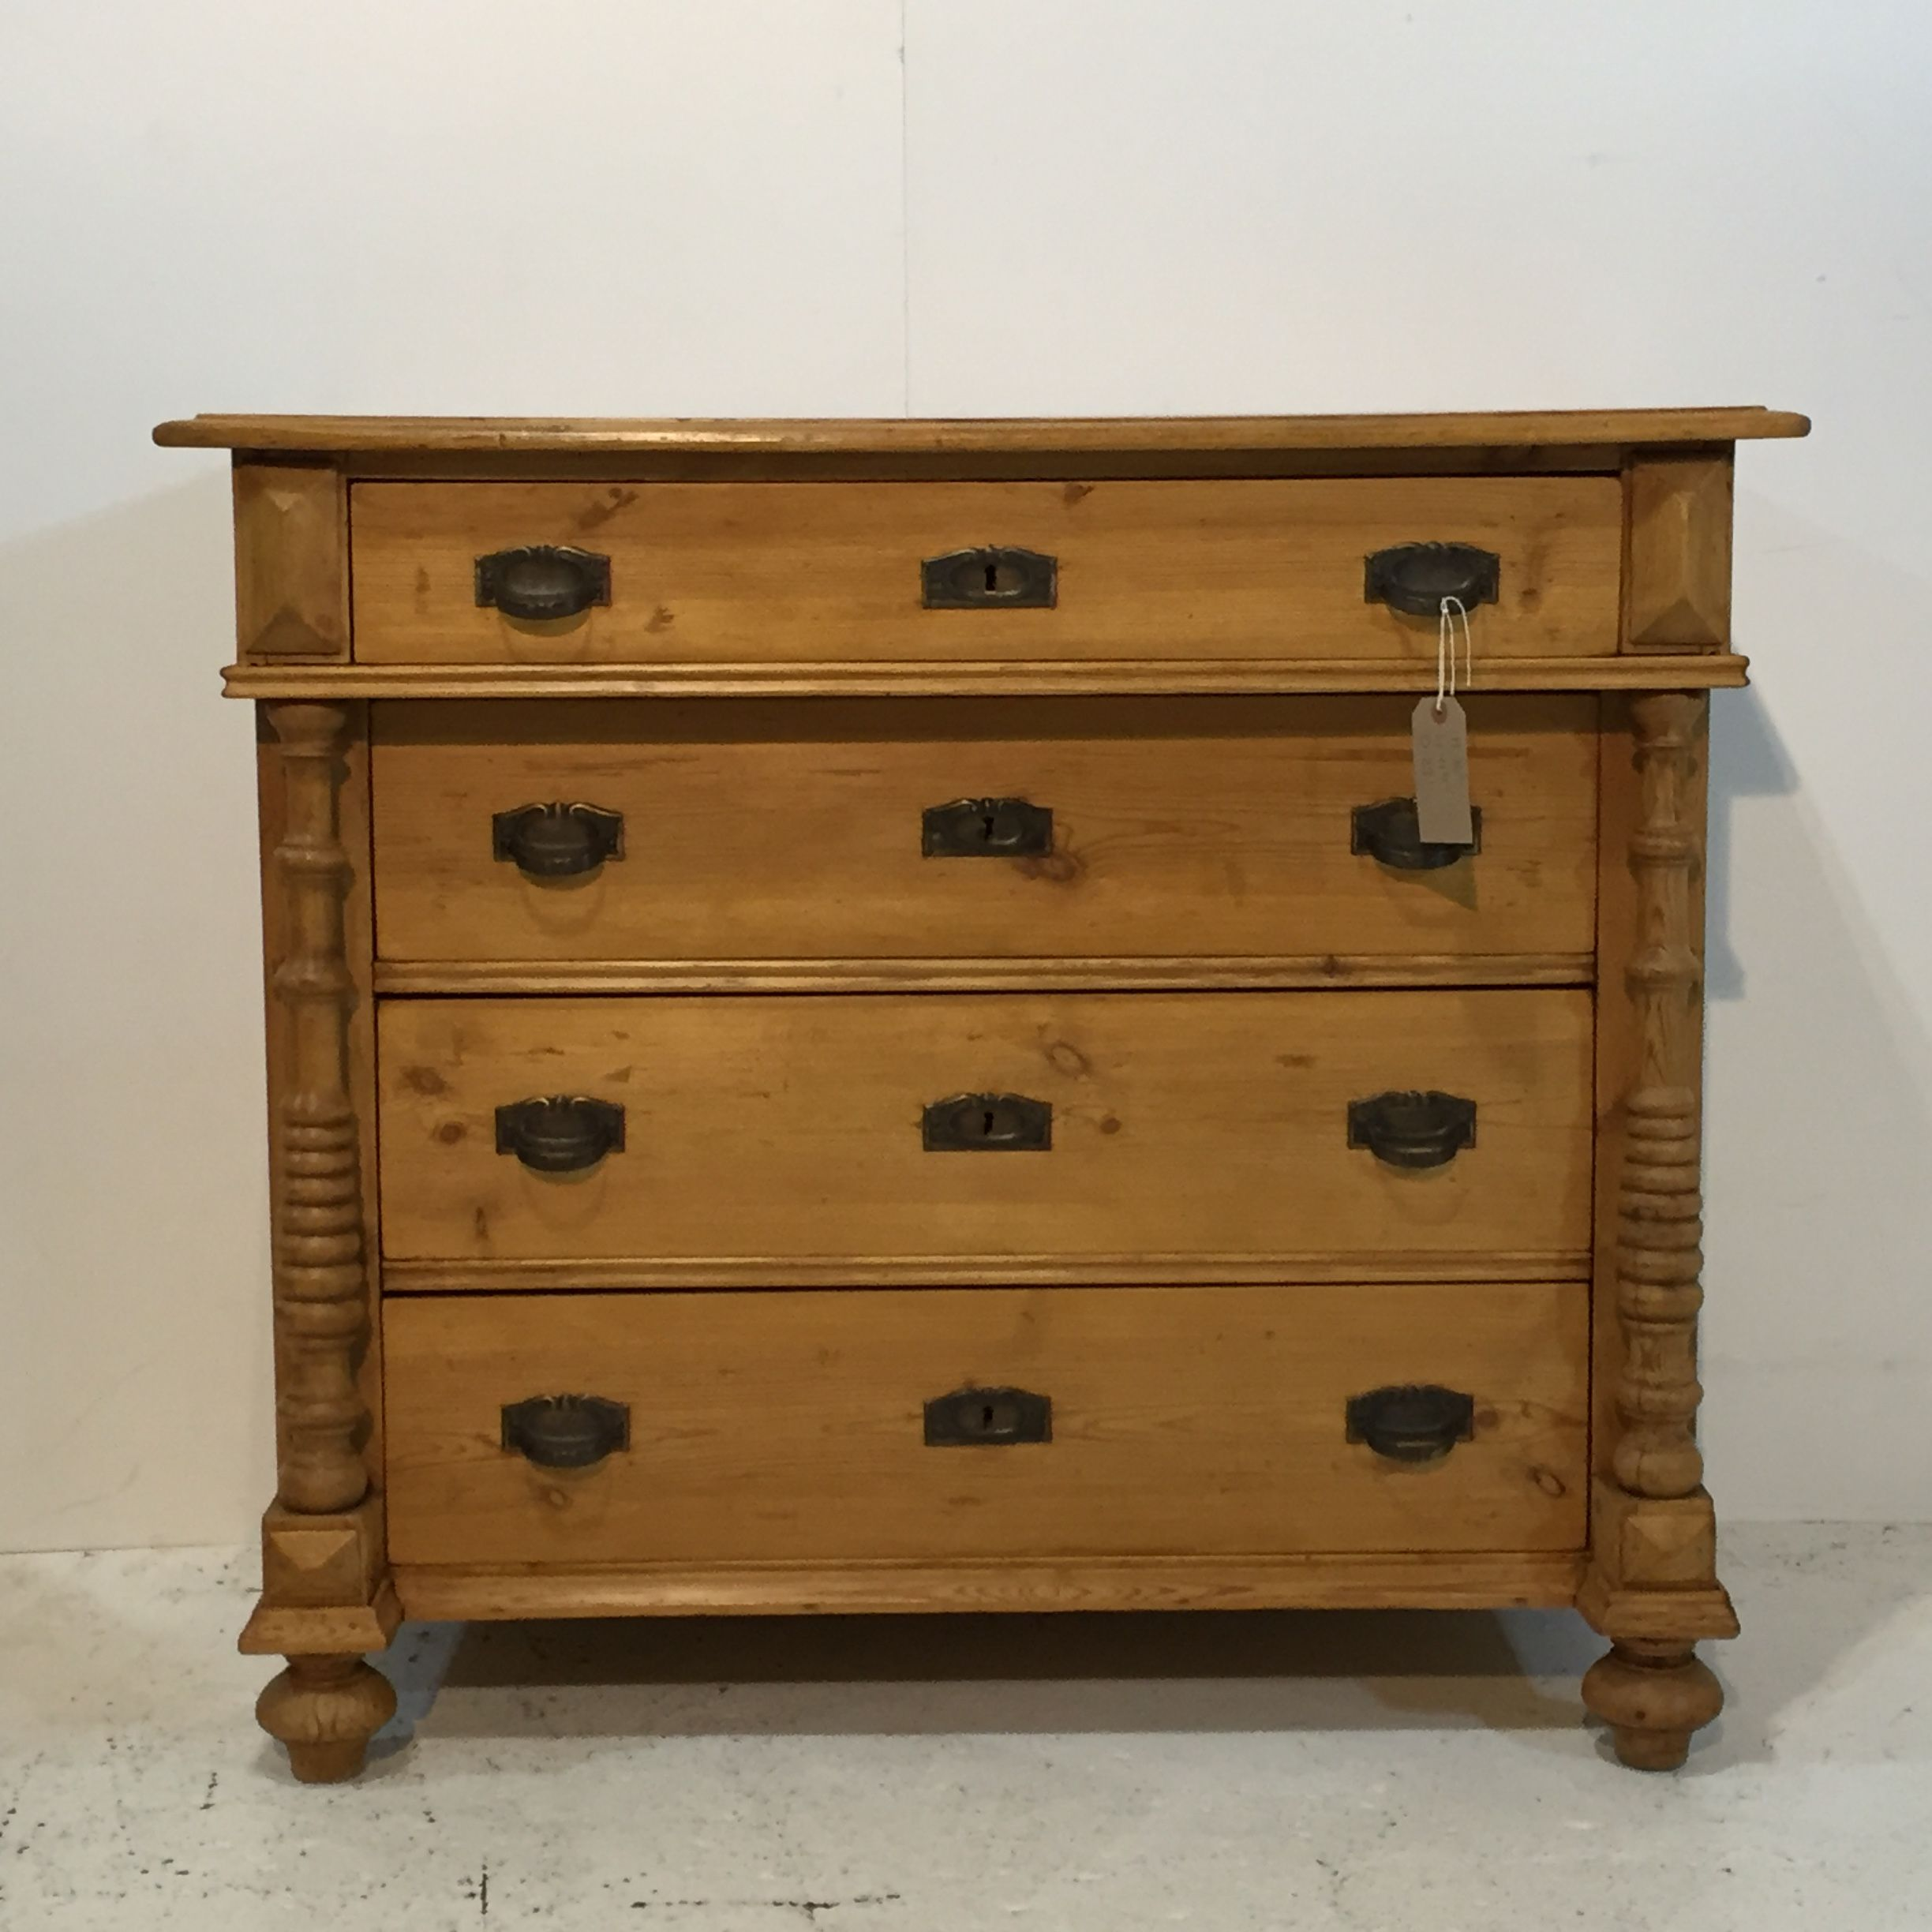 us products of rast drawers drawer large catalog chest en ikea